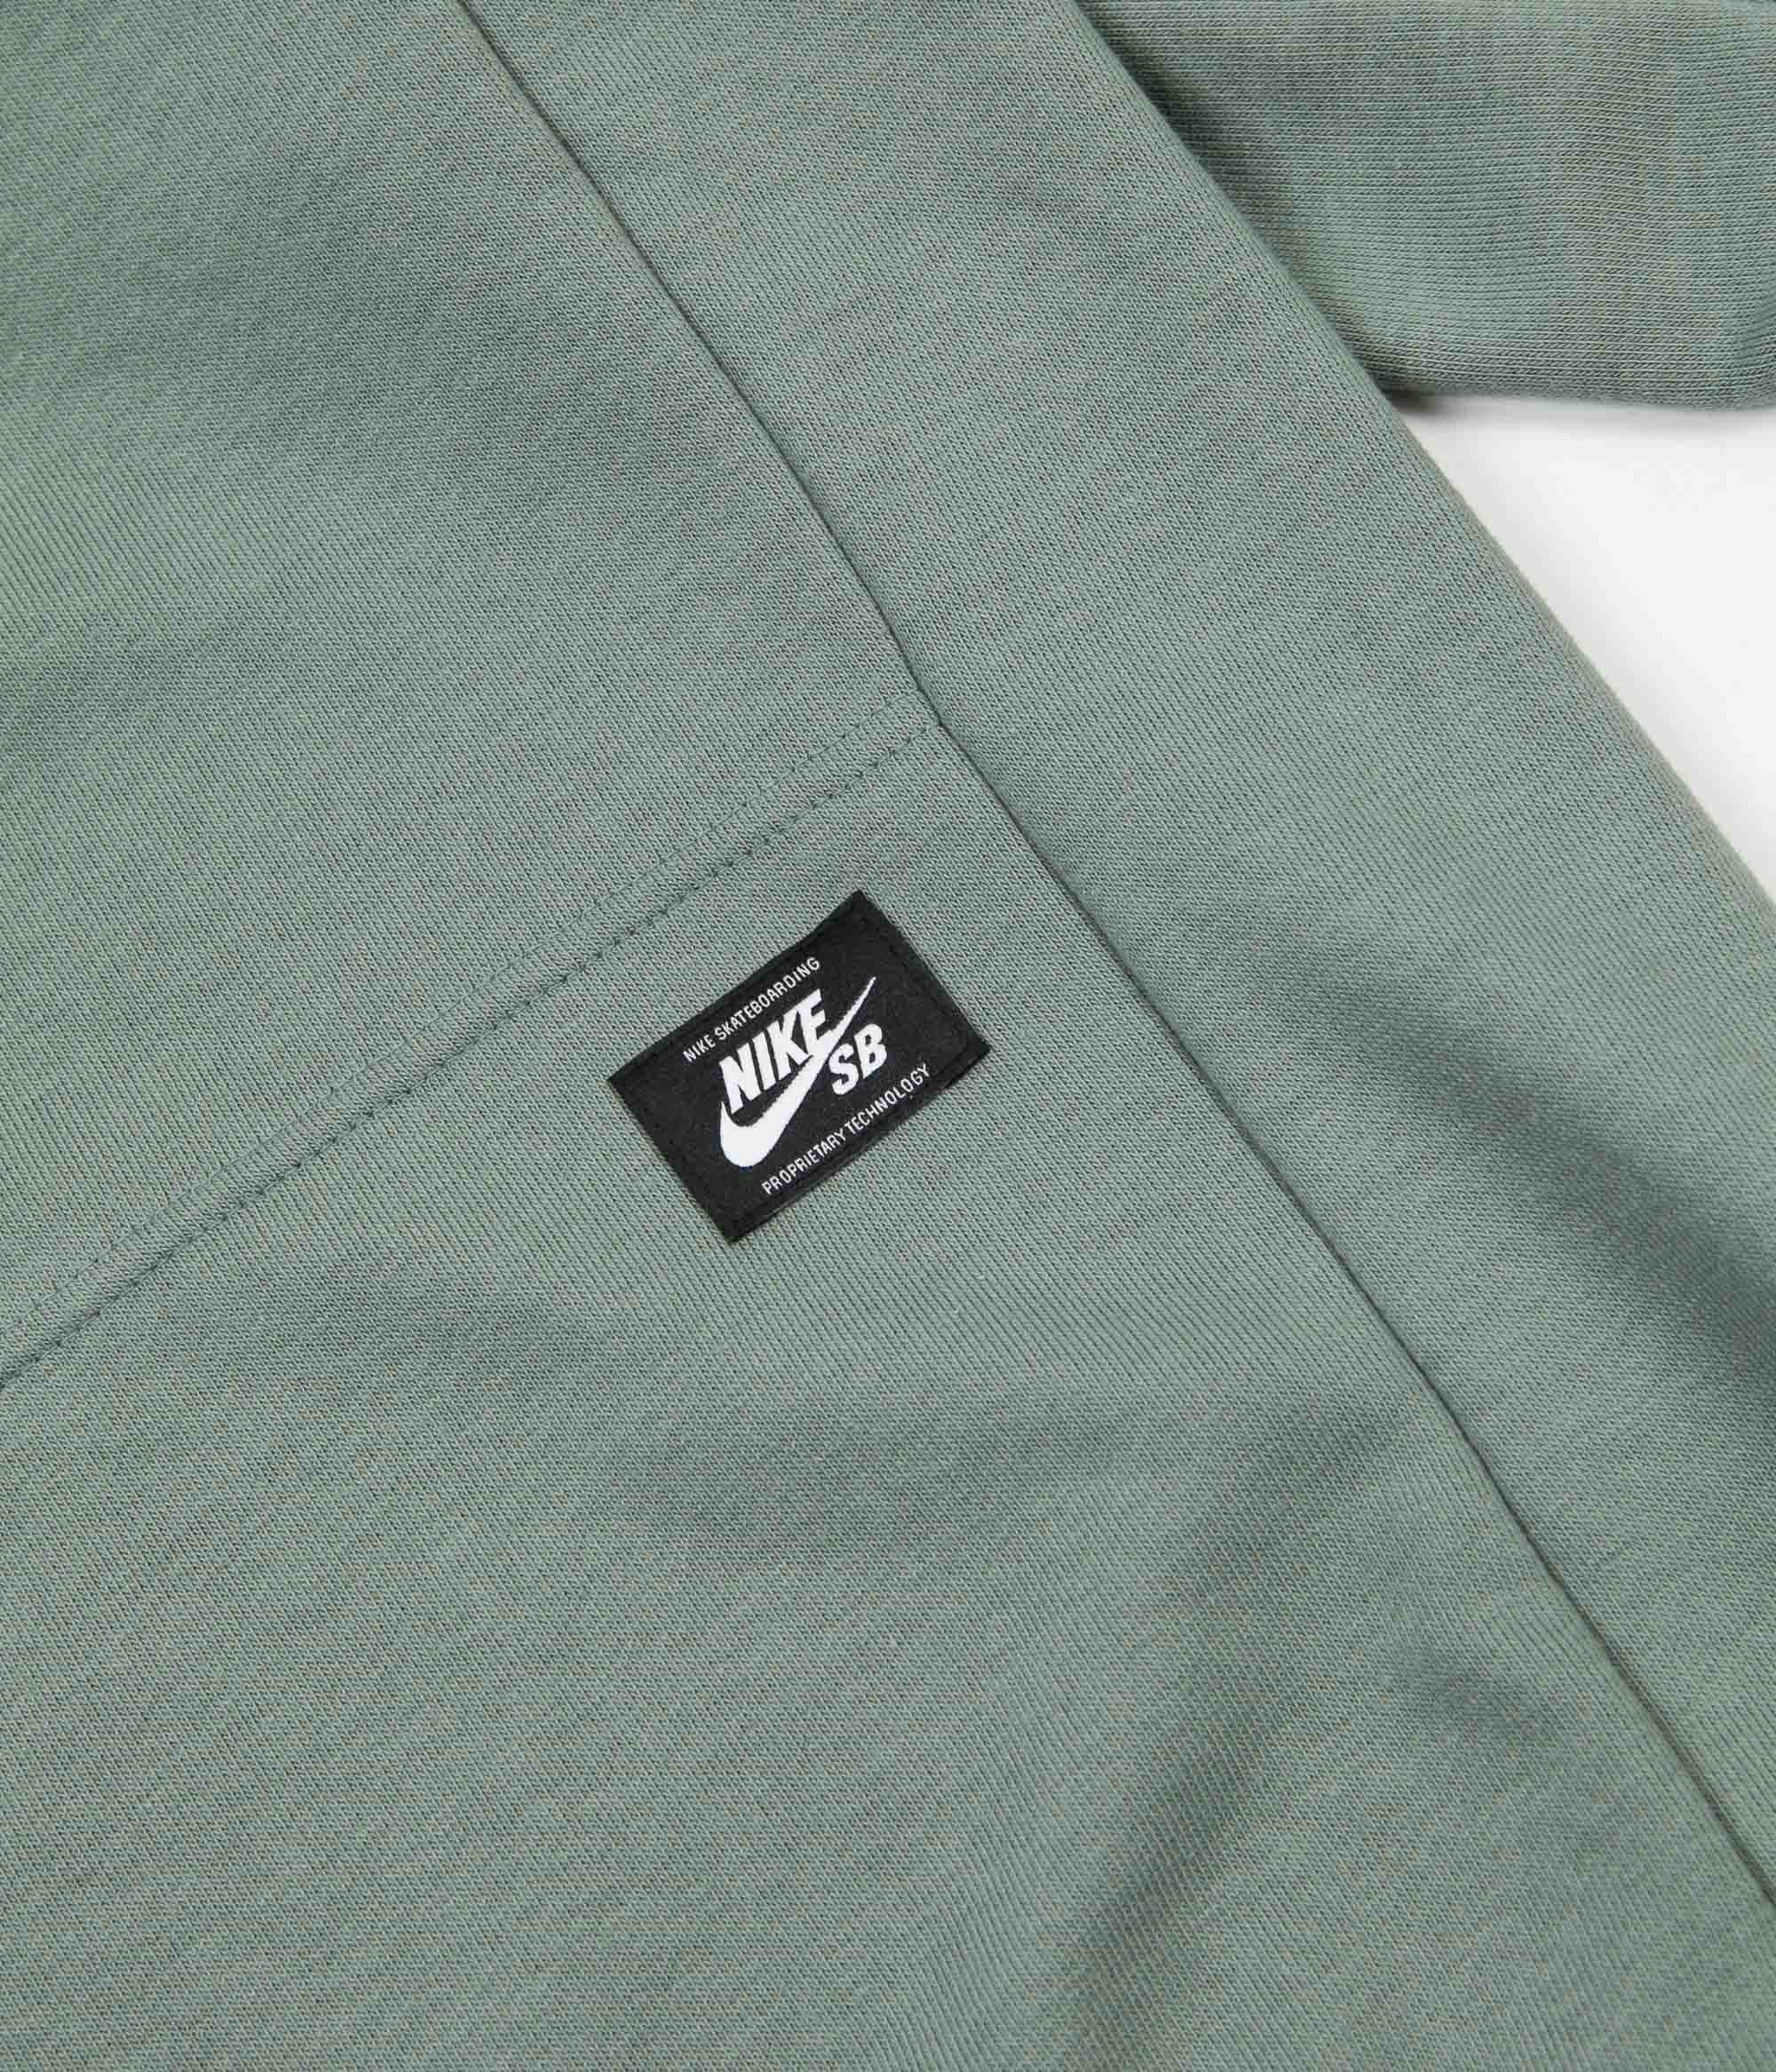 Nike Sb Dry Everett Crewneck Sweatshirt Clay Green White Flatspot